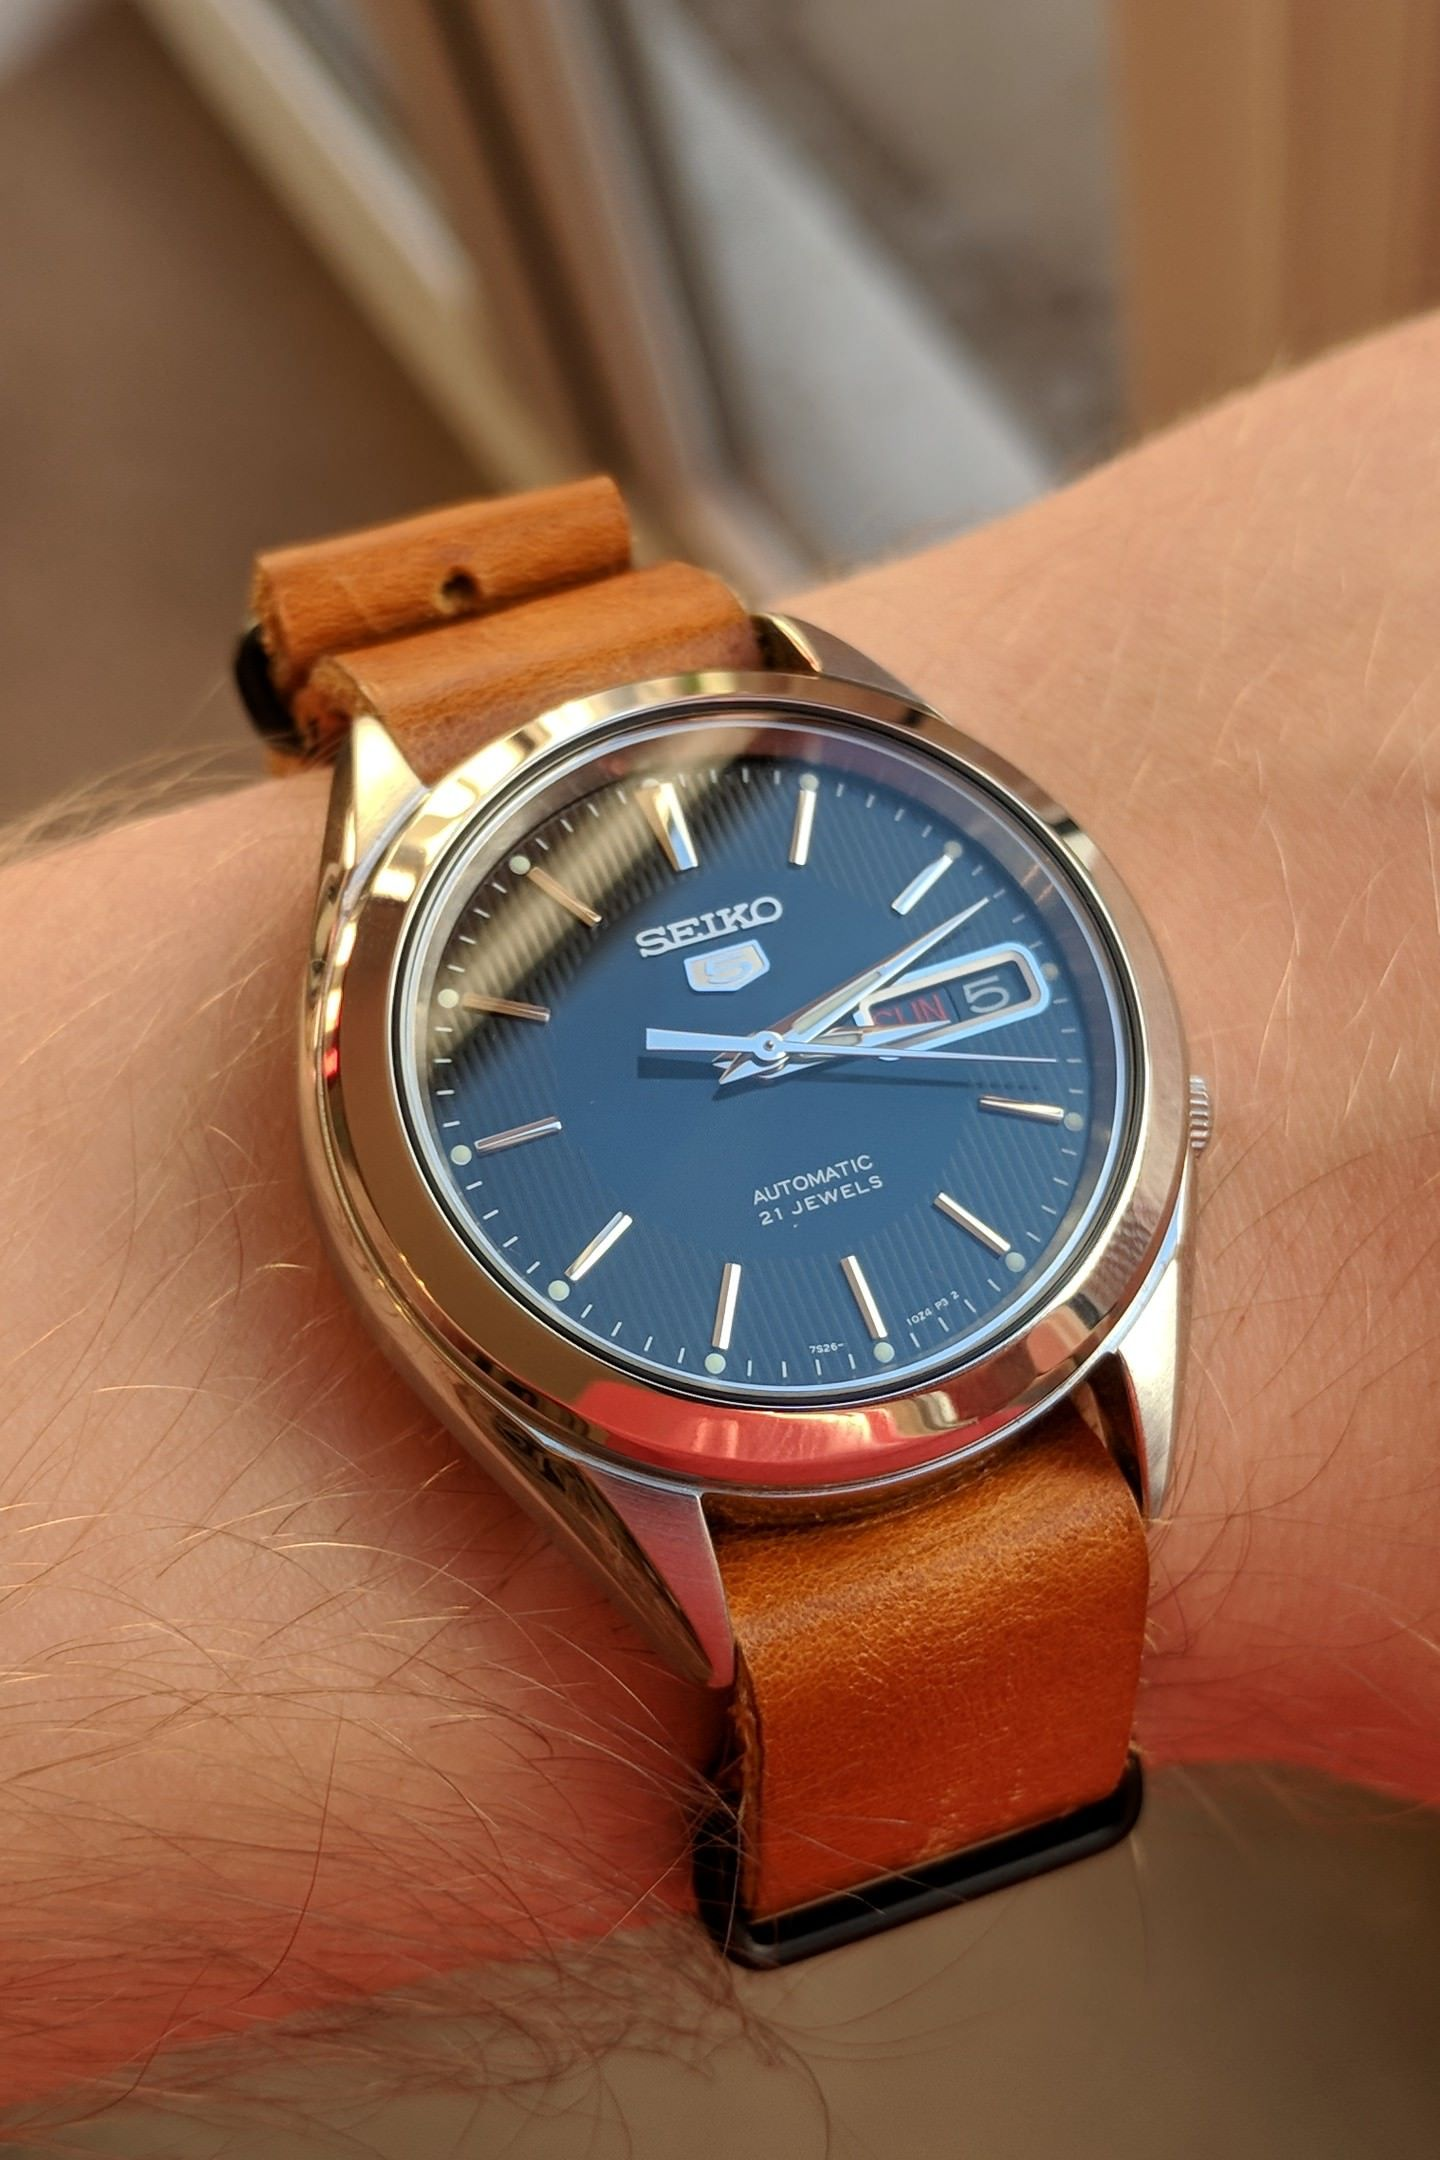 Seiko Saw A New Snkl23 On Ebay For A Good Price No Hesitation In